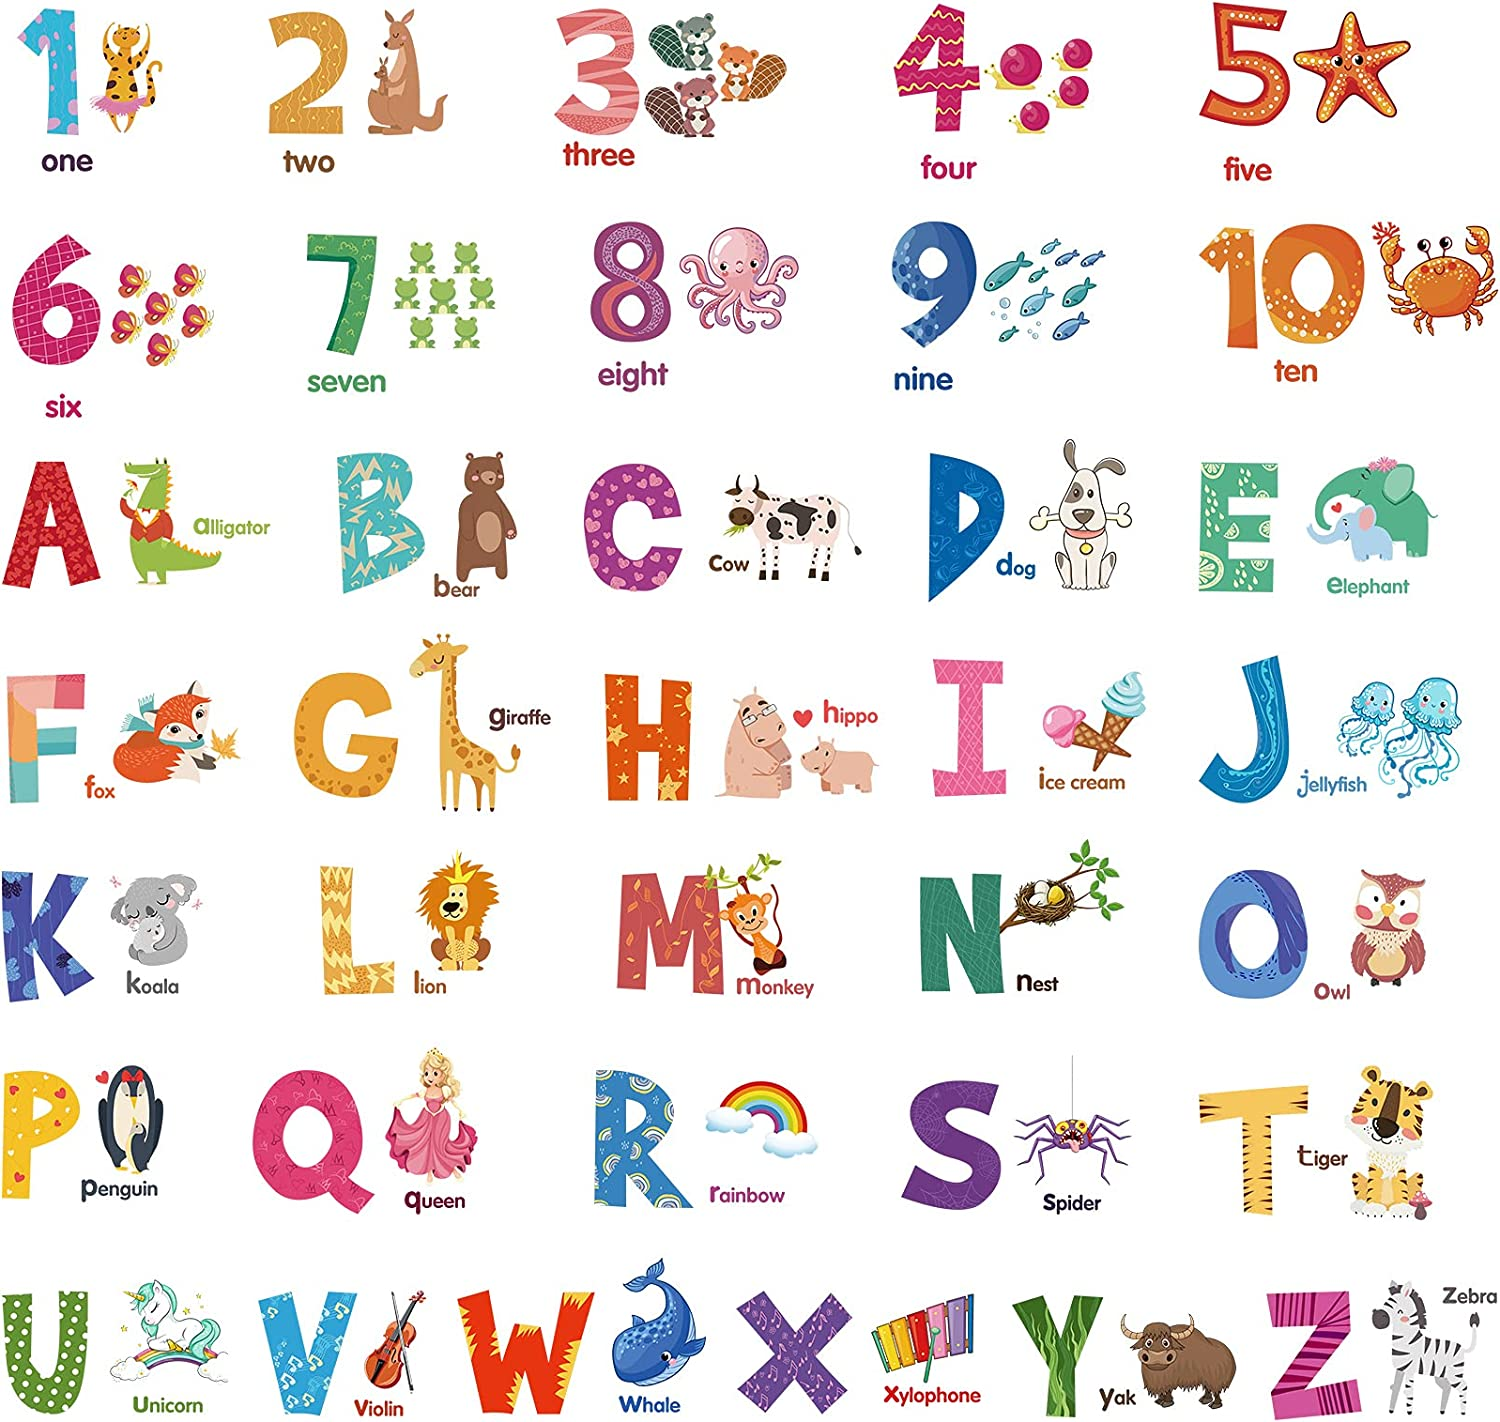 10 Sheets Number Animal Alphabet Wall Stickers Peel and Stick Cartoon Alphabet Stickers Learning Educational Wall Decals Educational Classroom Stickers for Kids Playroom Bedroom Decorations